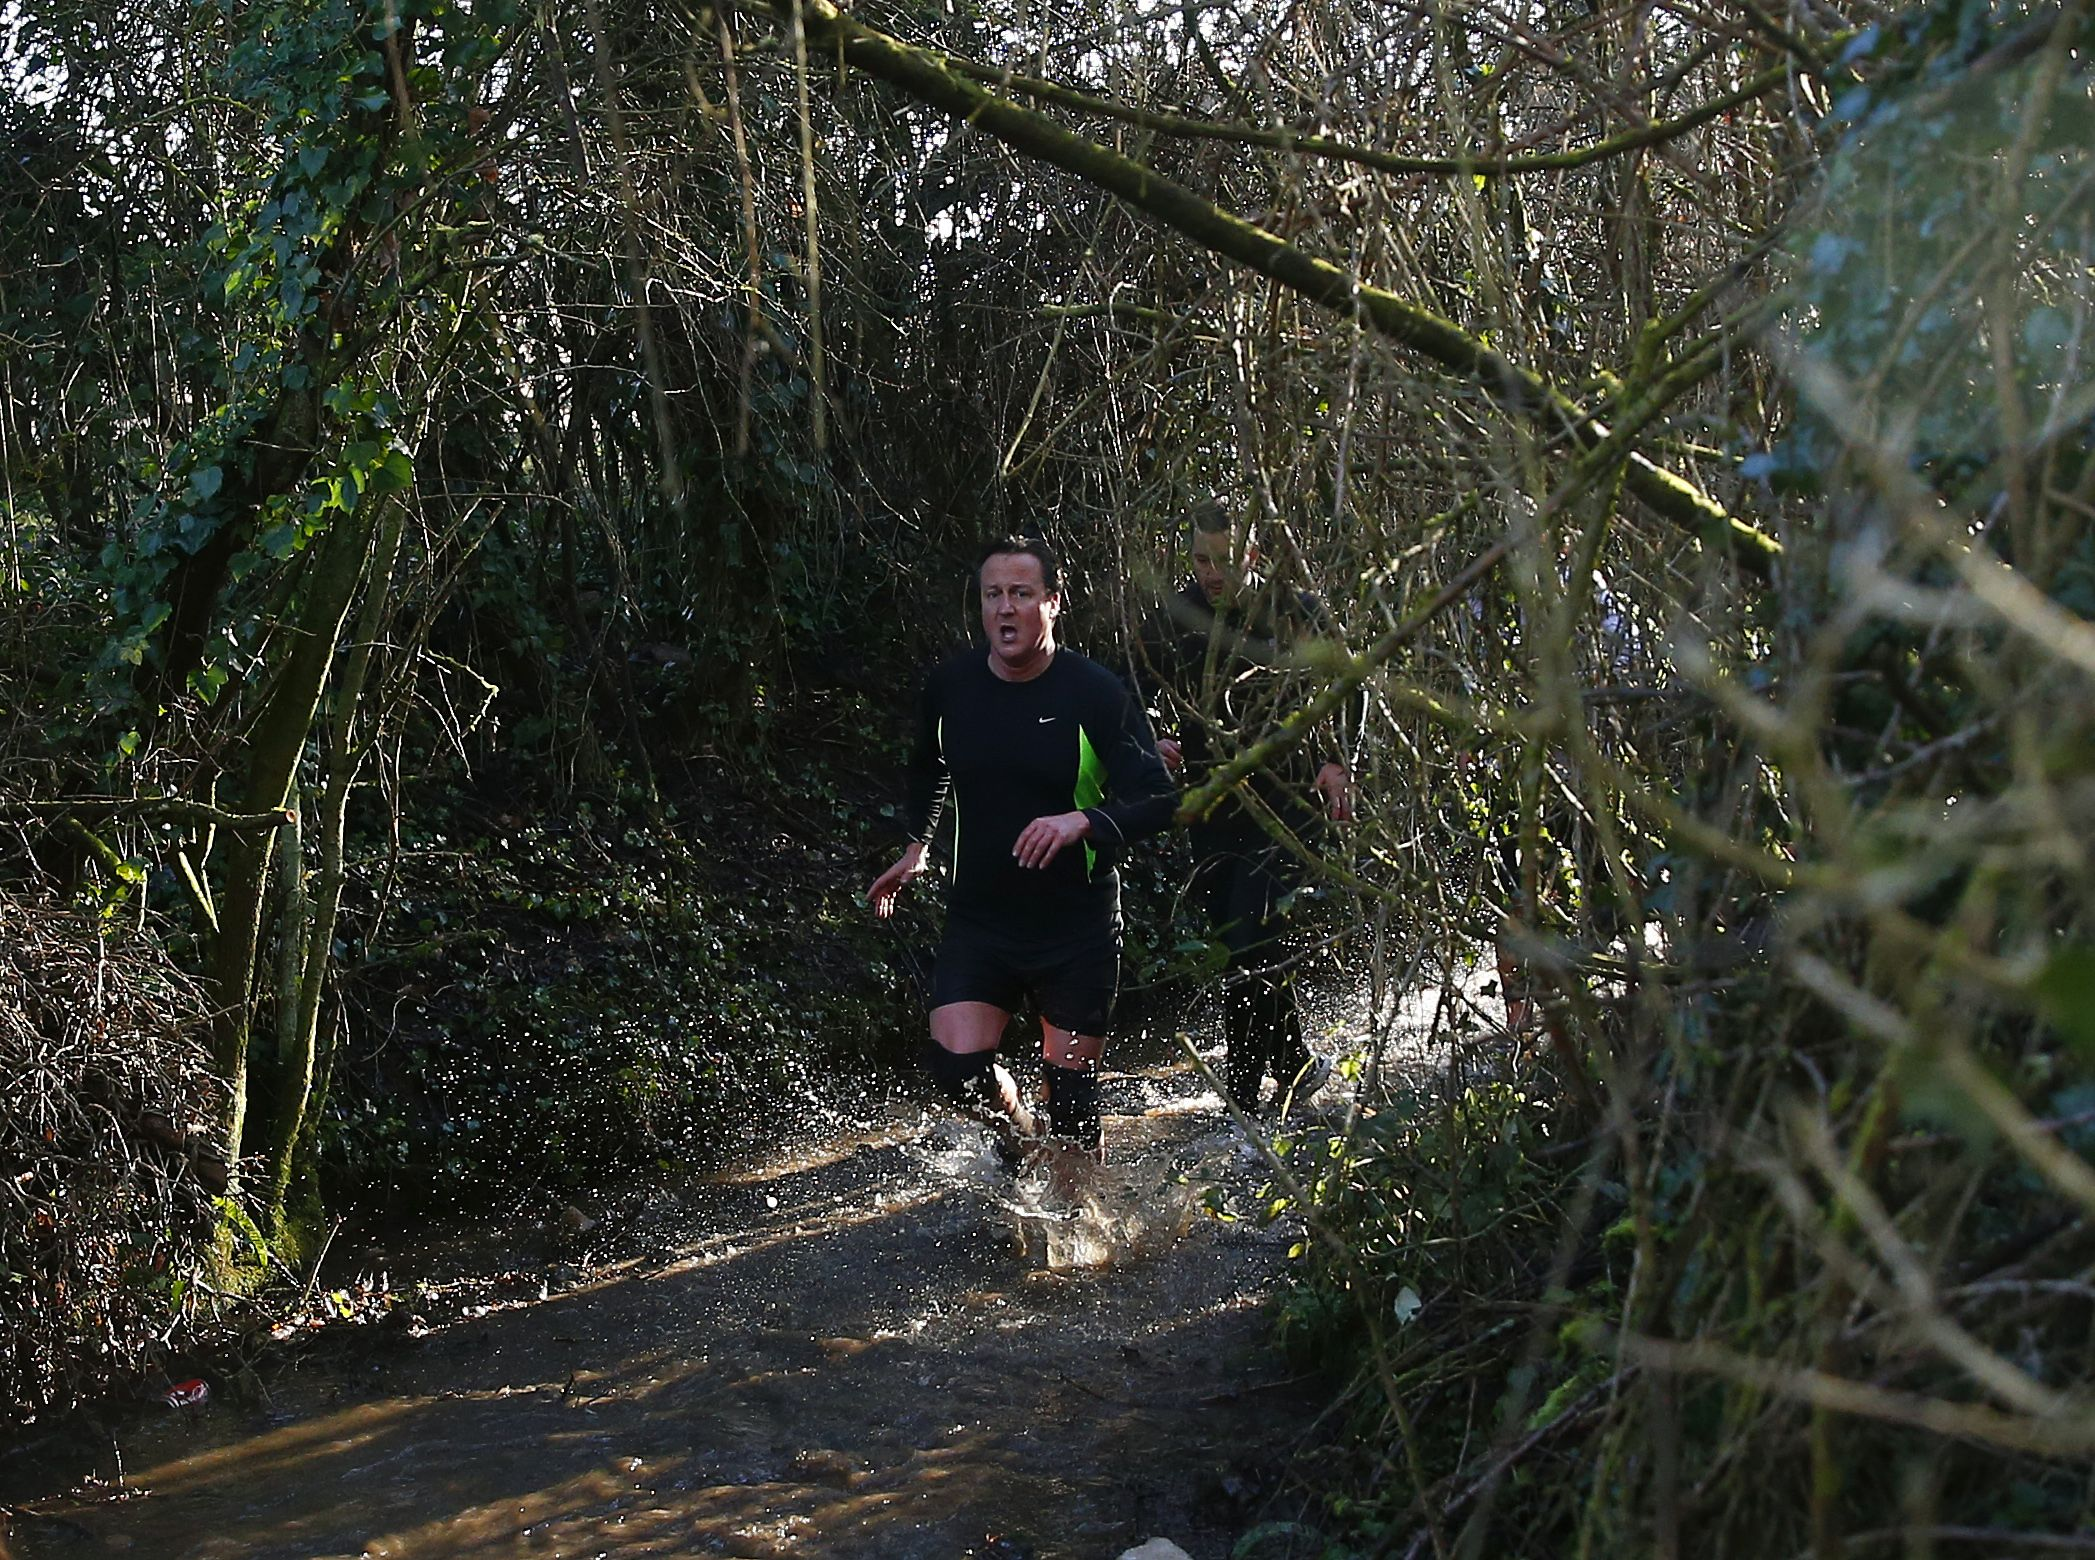 David Cameron competes in the Great Brook Run,